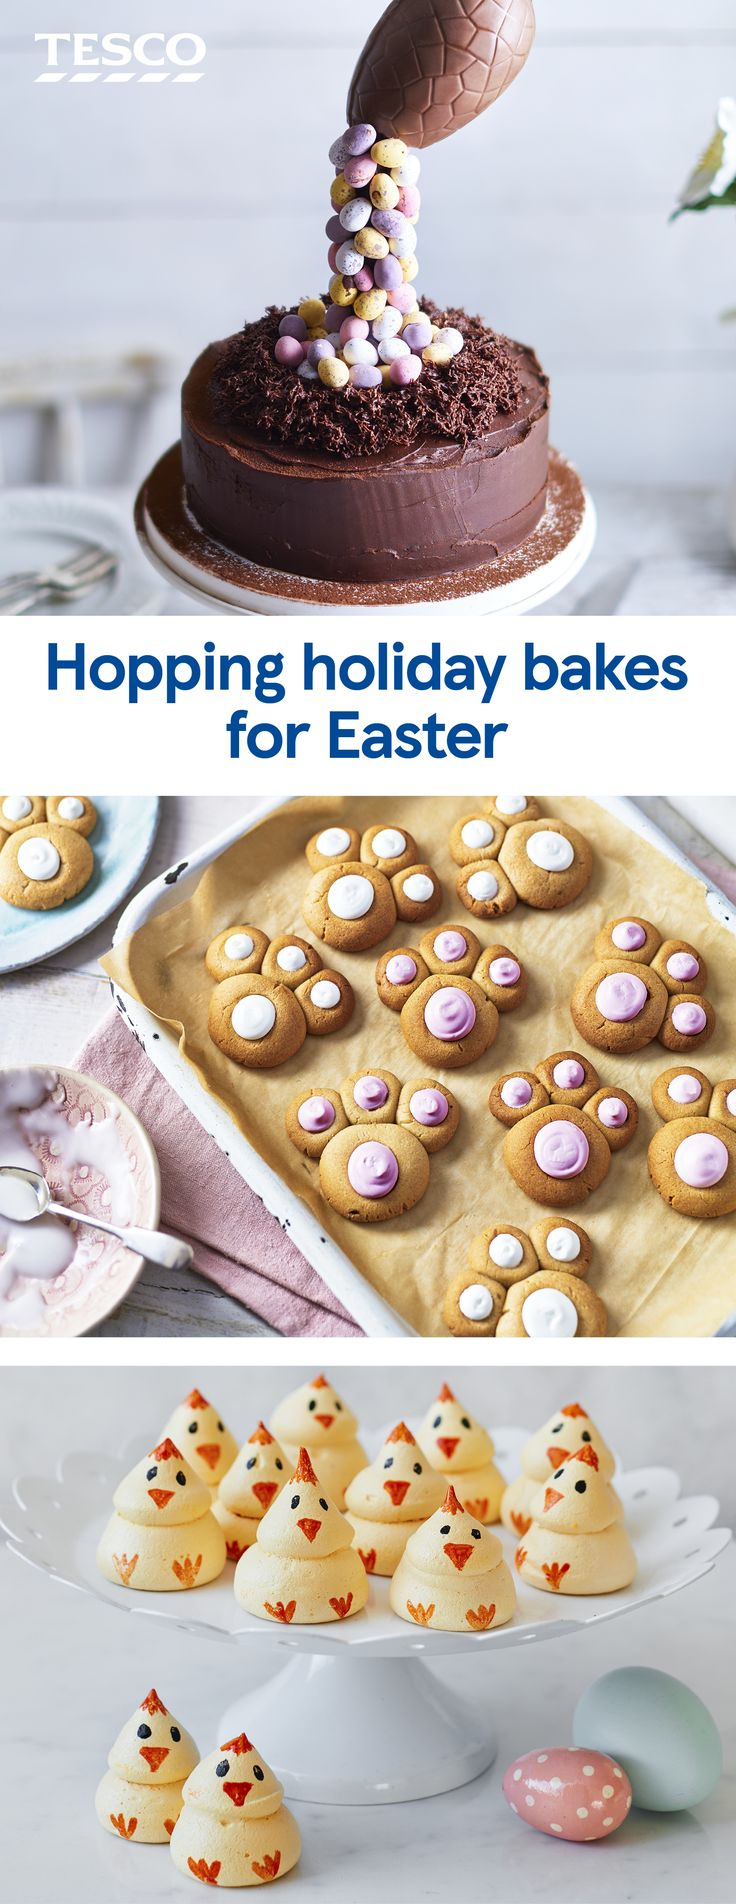 Get your bake on this Easter with these fun cakes and bakes that are perfect for the long weekend. From bunny biscuits to gravity-defying cakes, meringues, choux buns and more, you'll definitely be star baker. | Tesco